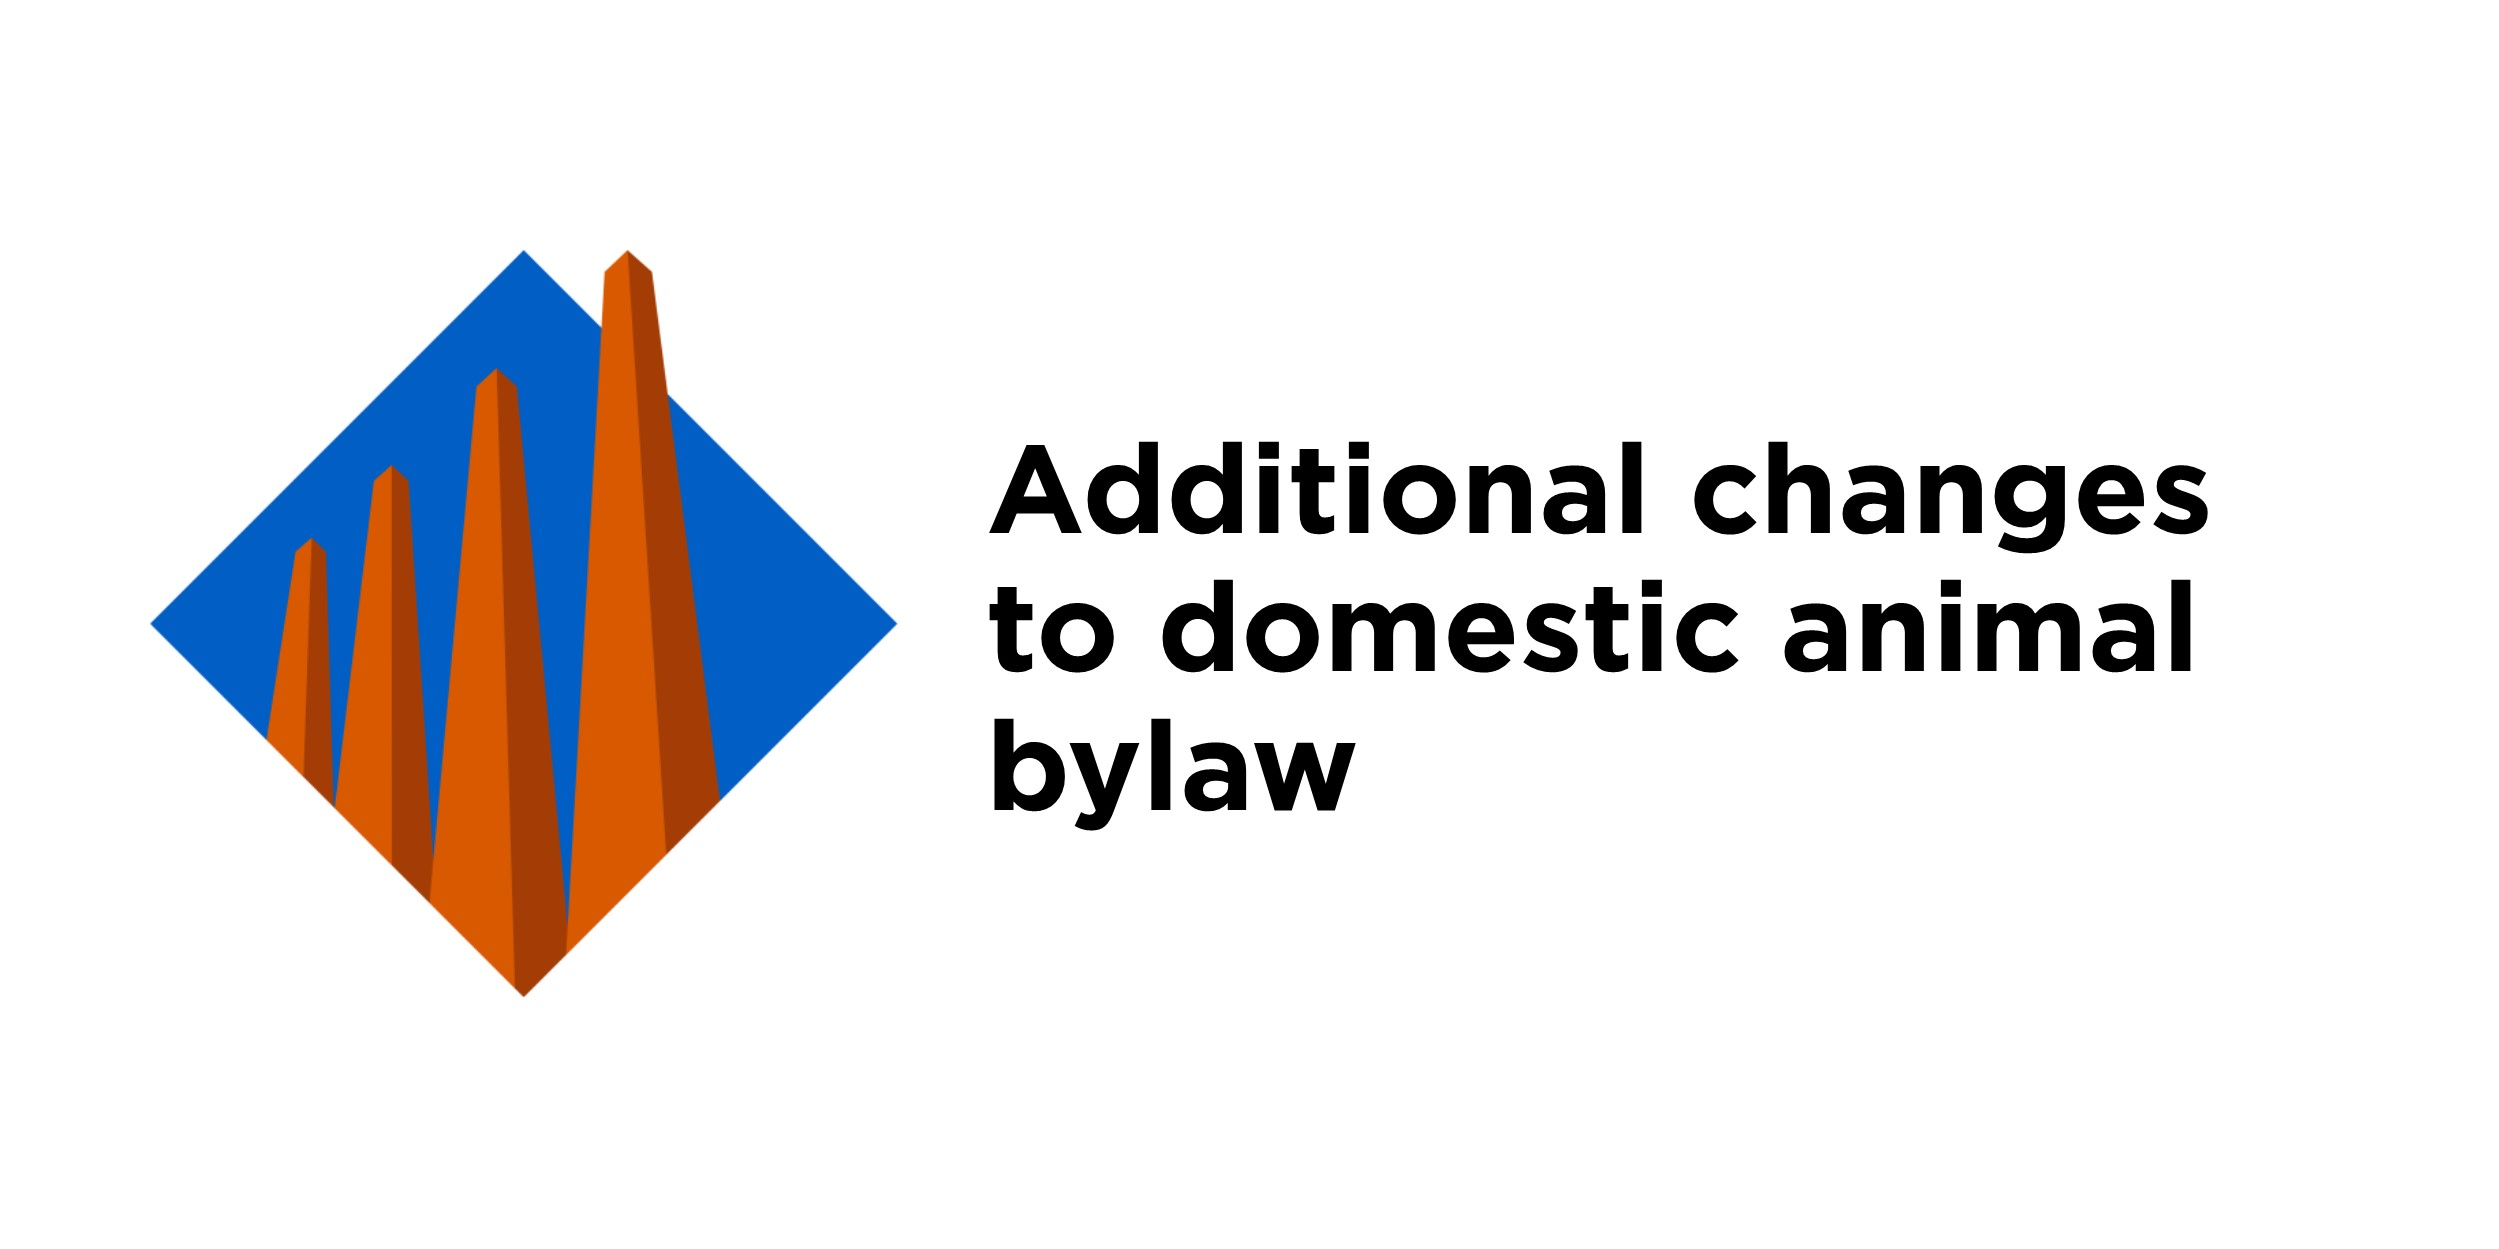 Domestic Animal Bylaw changes